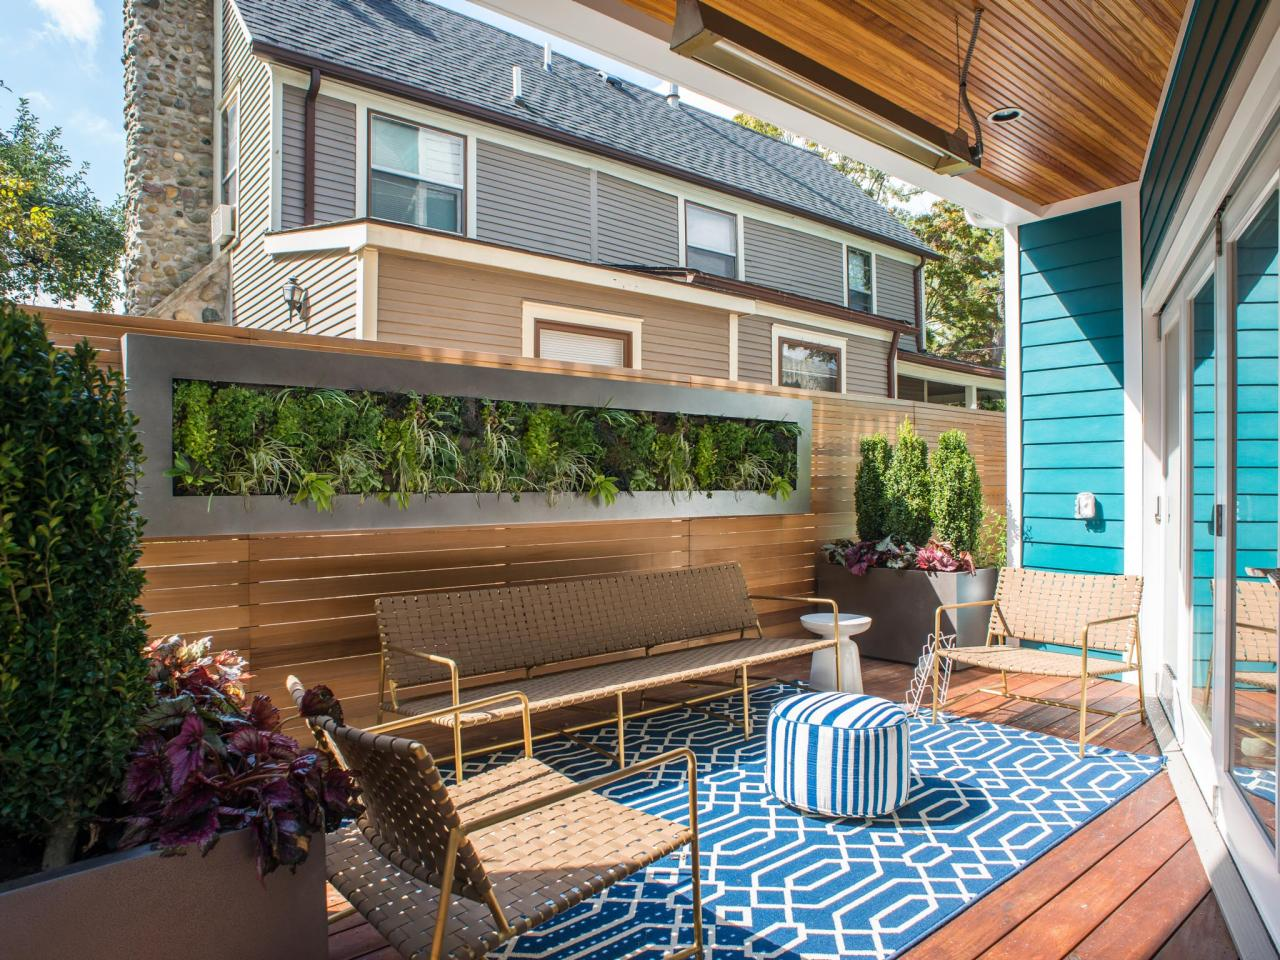 Small Deck With Custom Vertical Garden Wood Privacy Wall And Bright Blue Accents